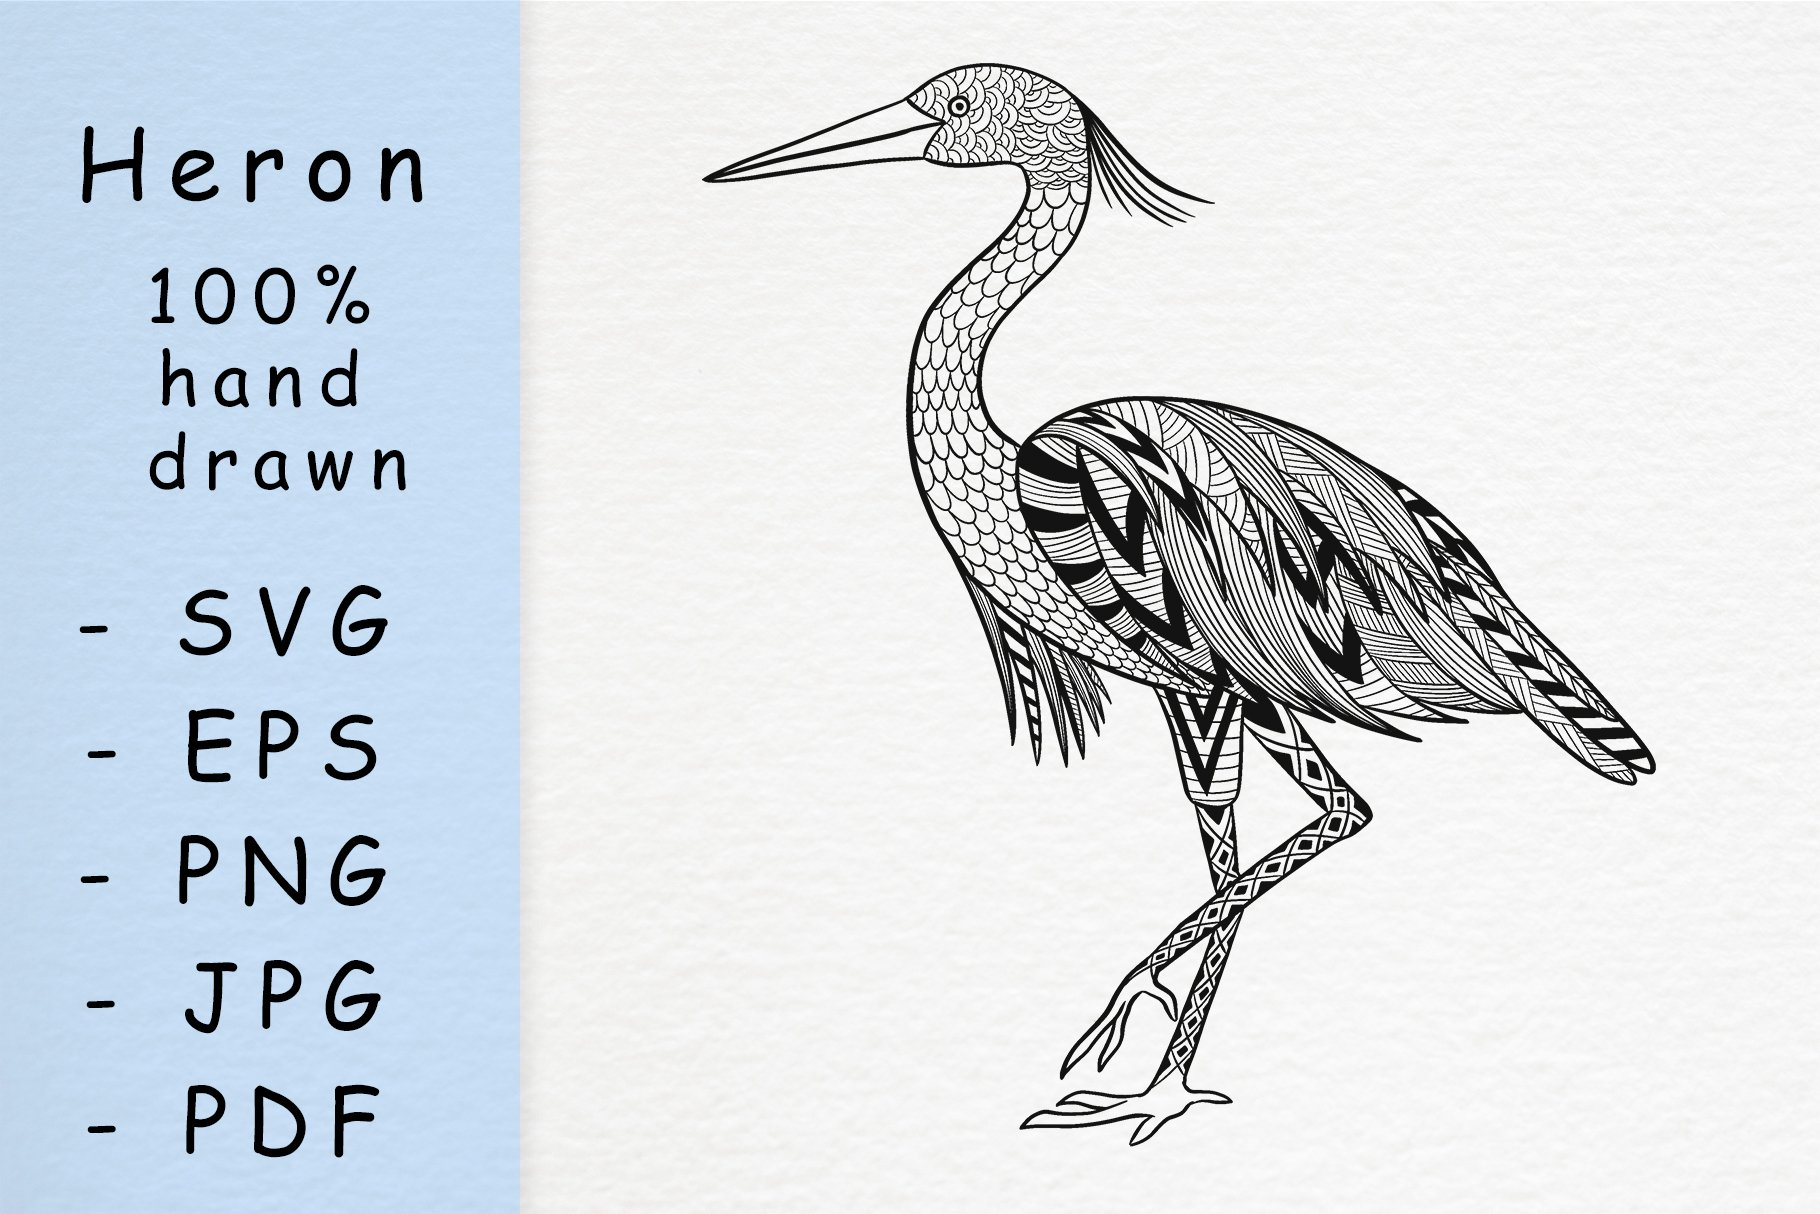 Hand drawn Heron with patterns example image 1